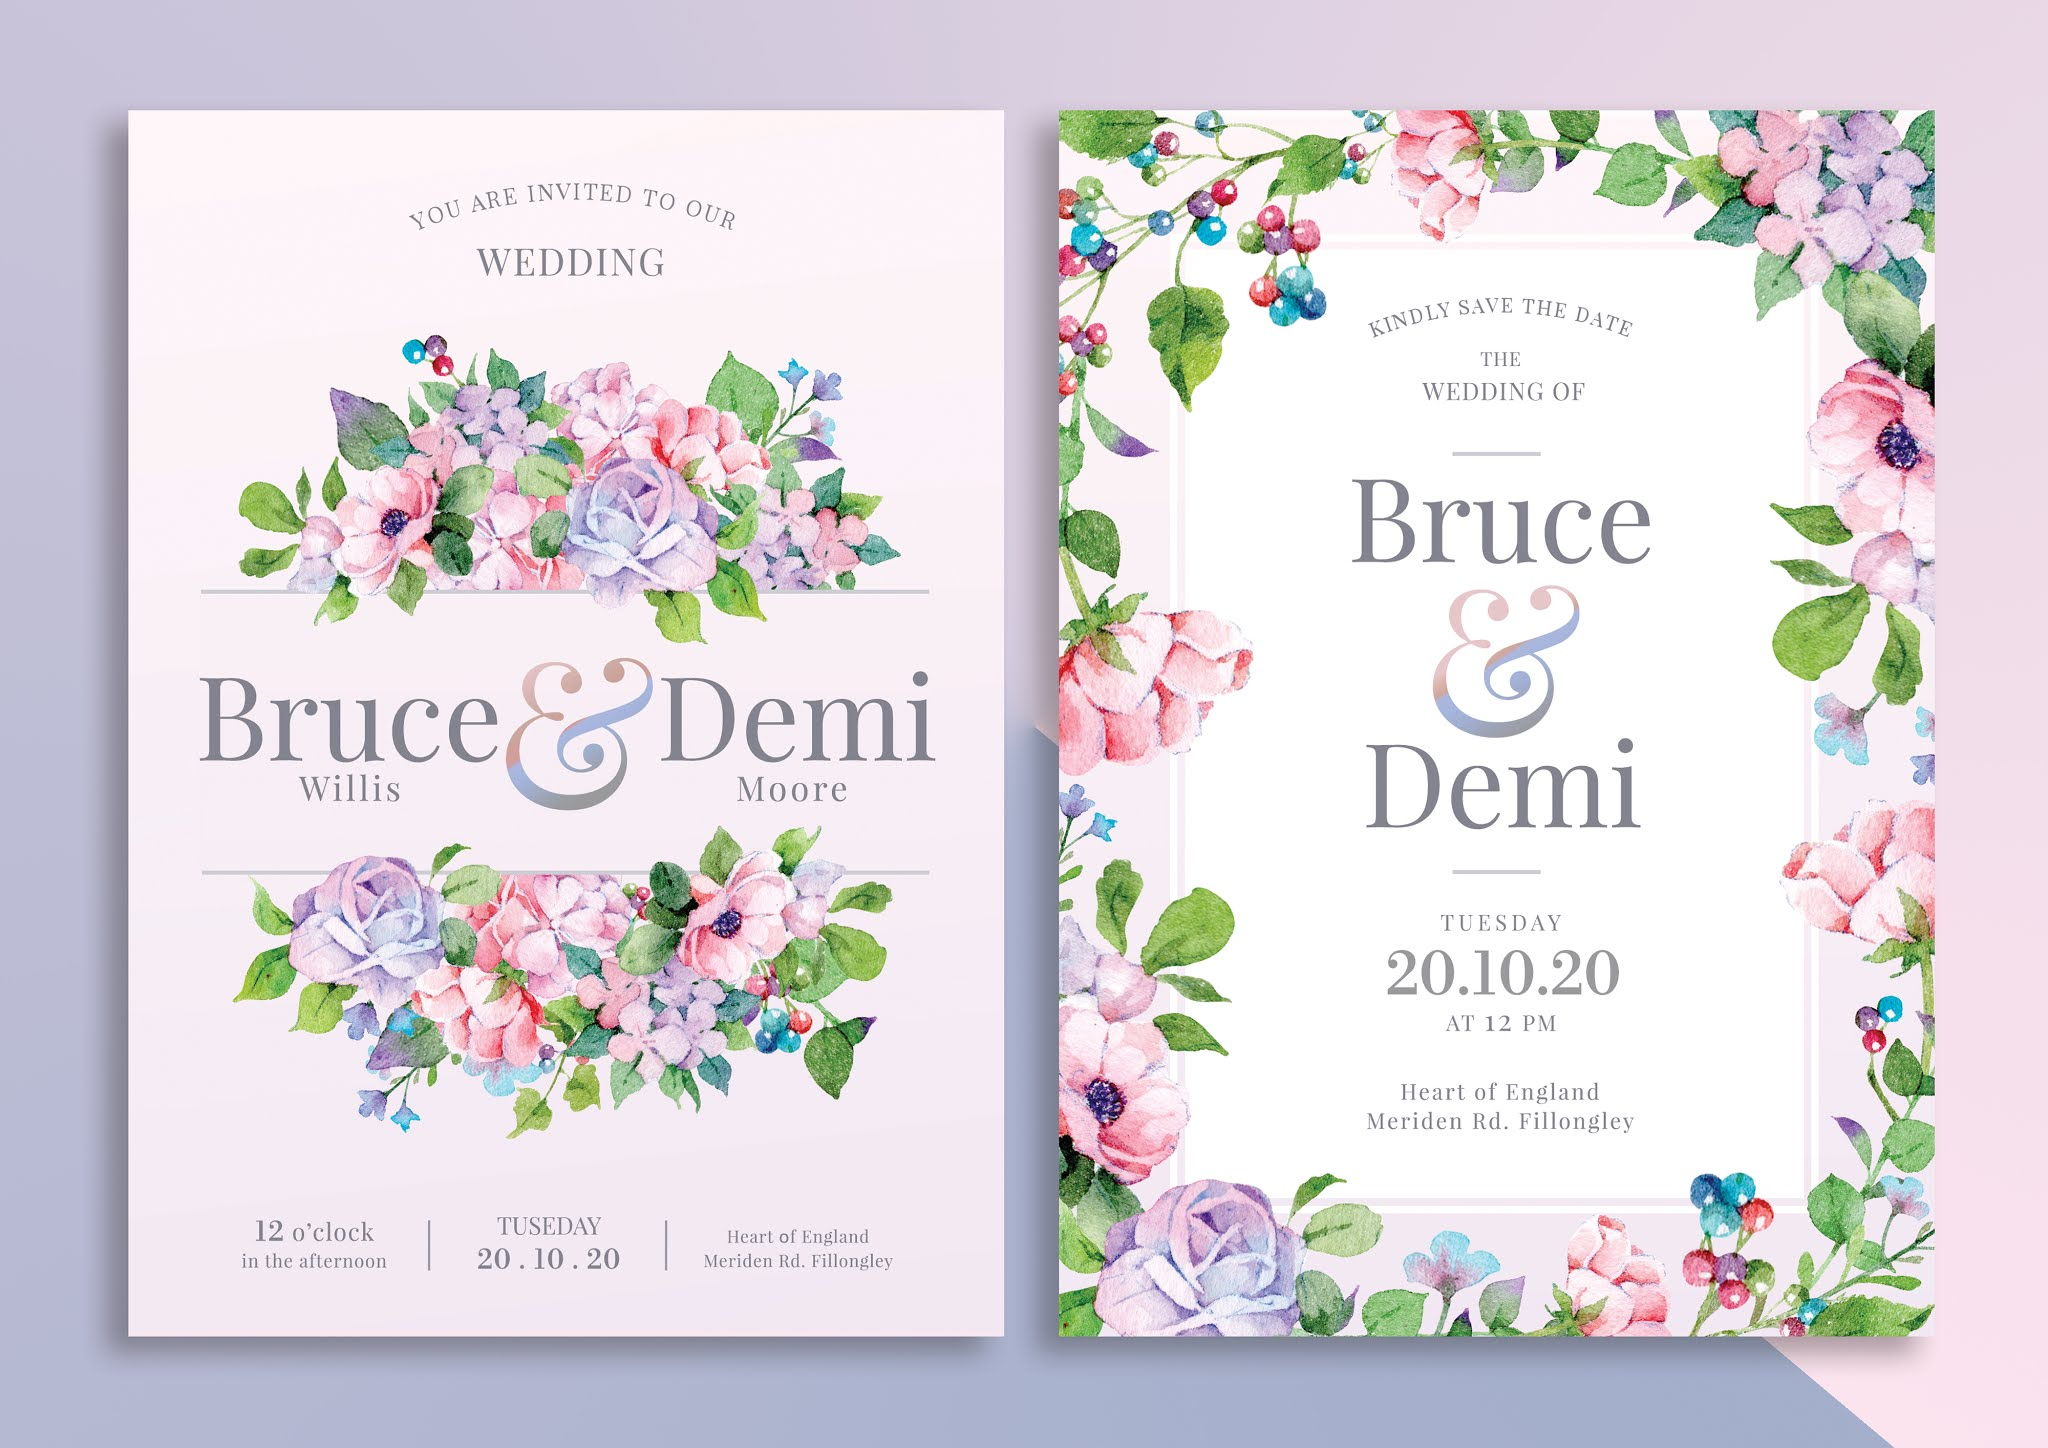 Download brochure cover or node book decorated with flowers open source psd